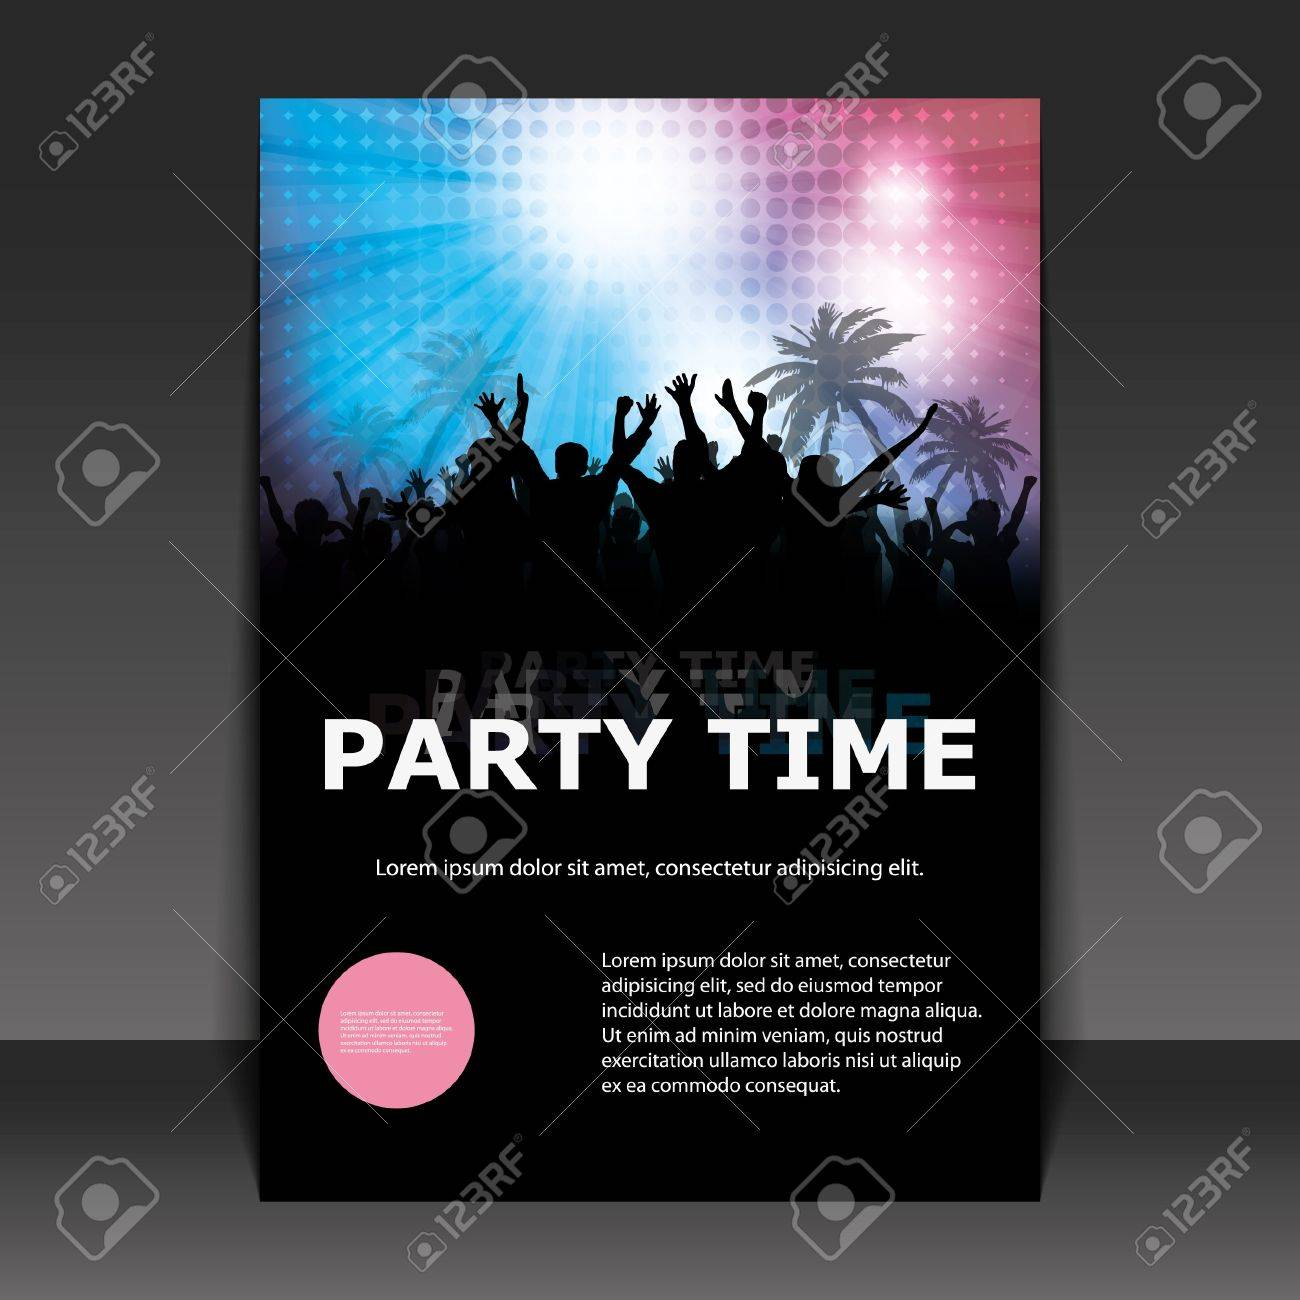 Flyer Design - Party Time Stock Vector - 9933753